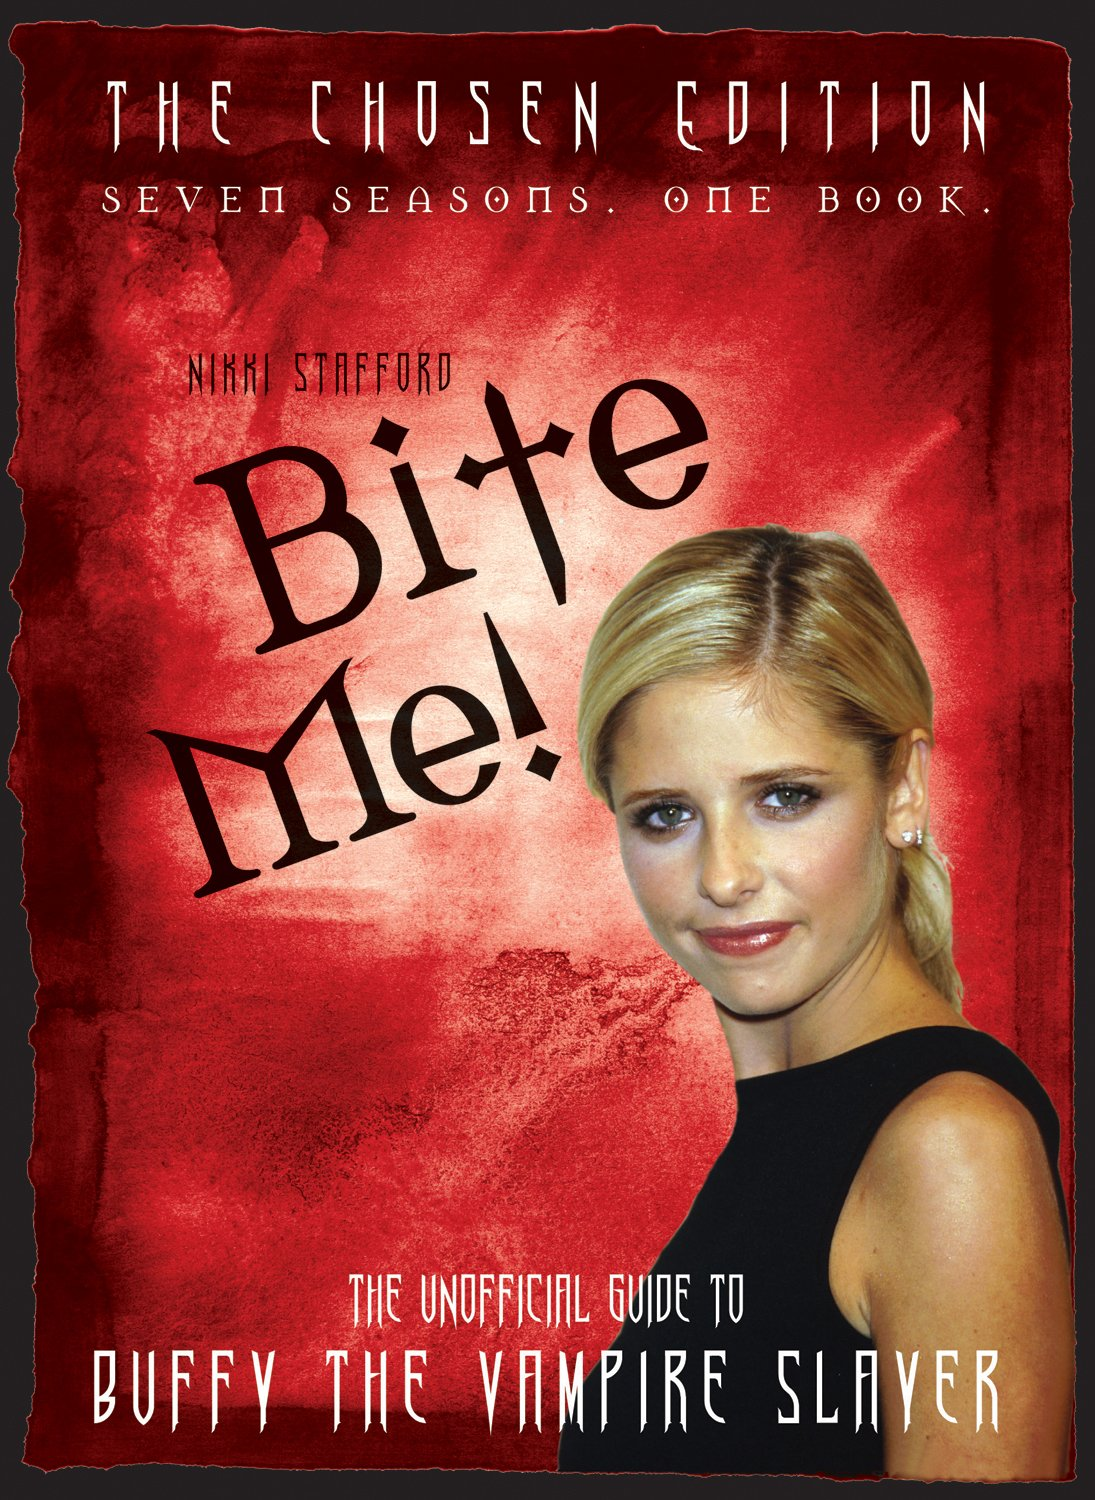 The 10th Buffyversary Guide to the World of Buffy the Vampire Slayer: Nikki  Stafford: 9781550228076: Books - Amazon.ca